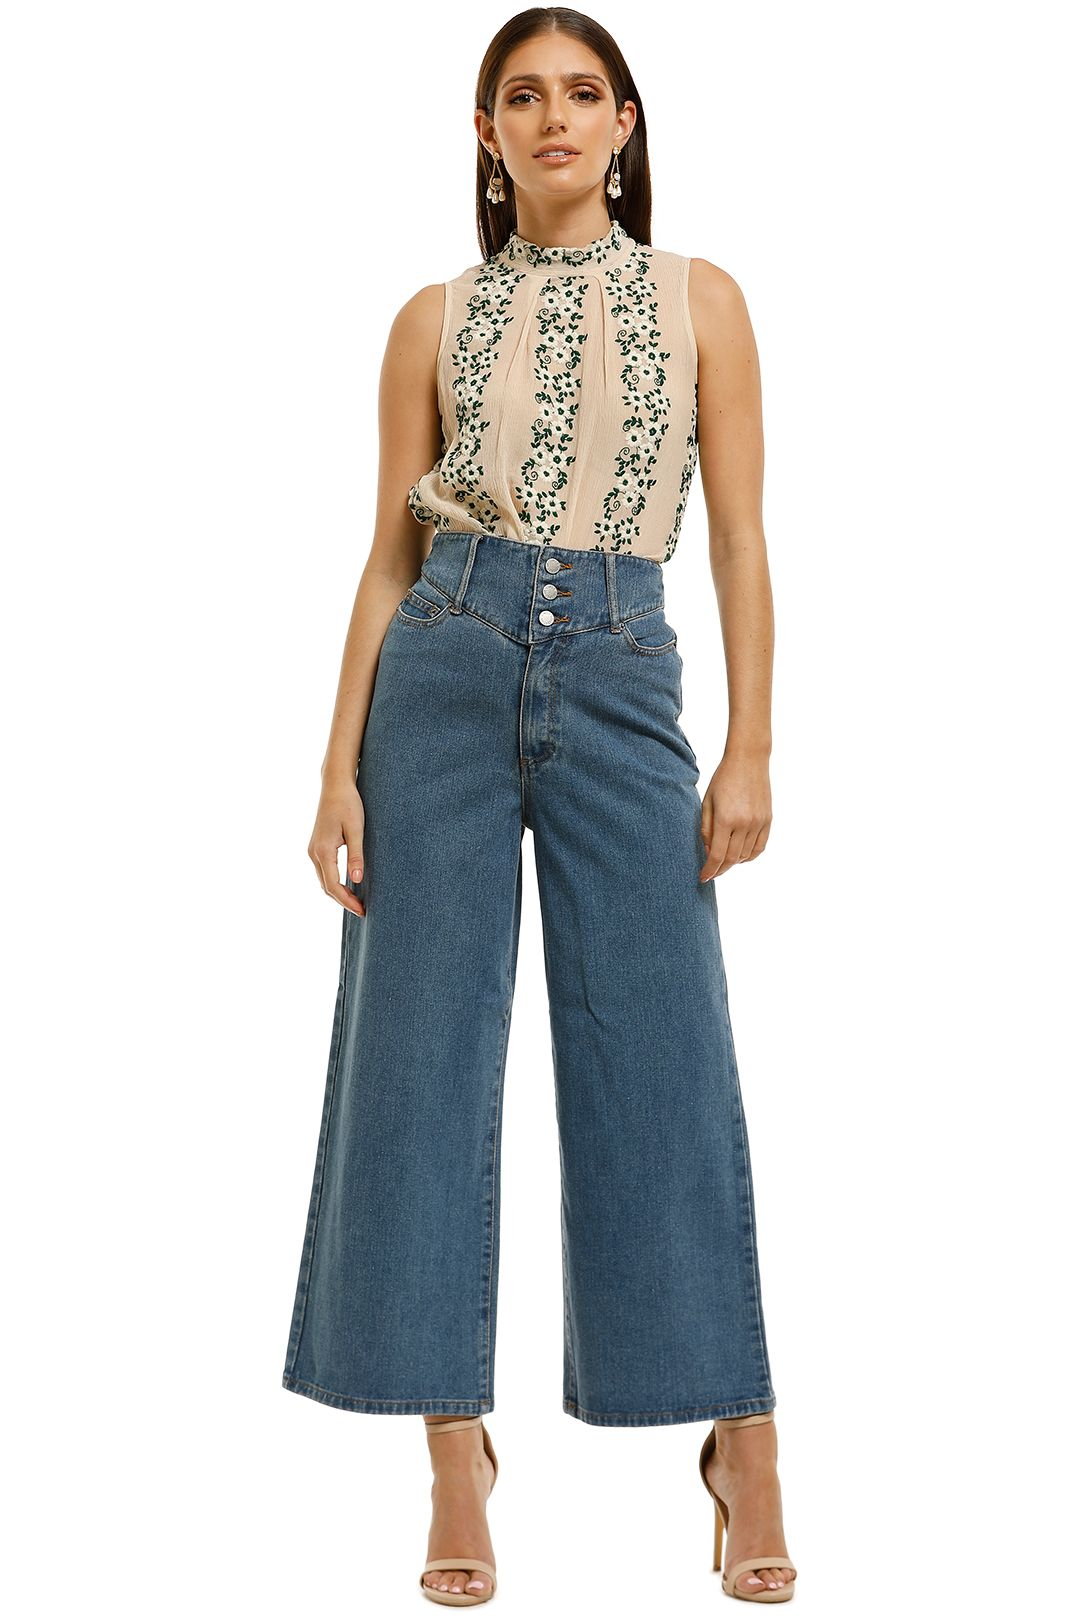 Moss-and-Spy-Daisy-Top-Embroidered-Floral-Front